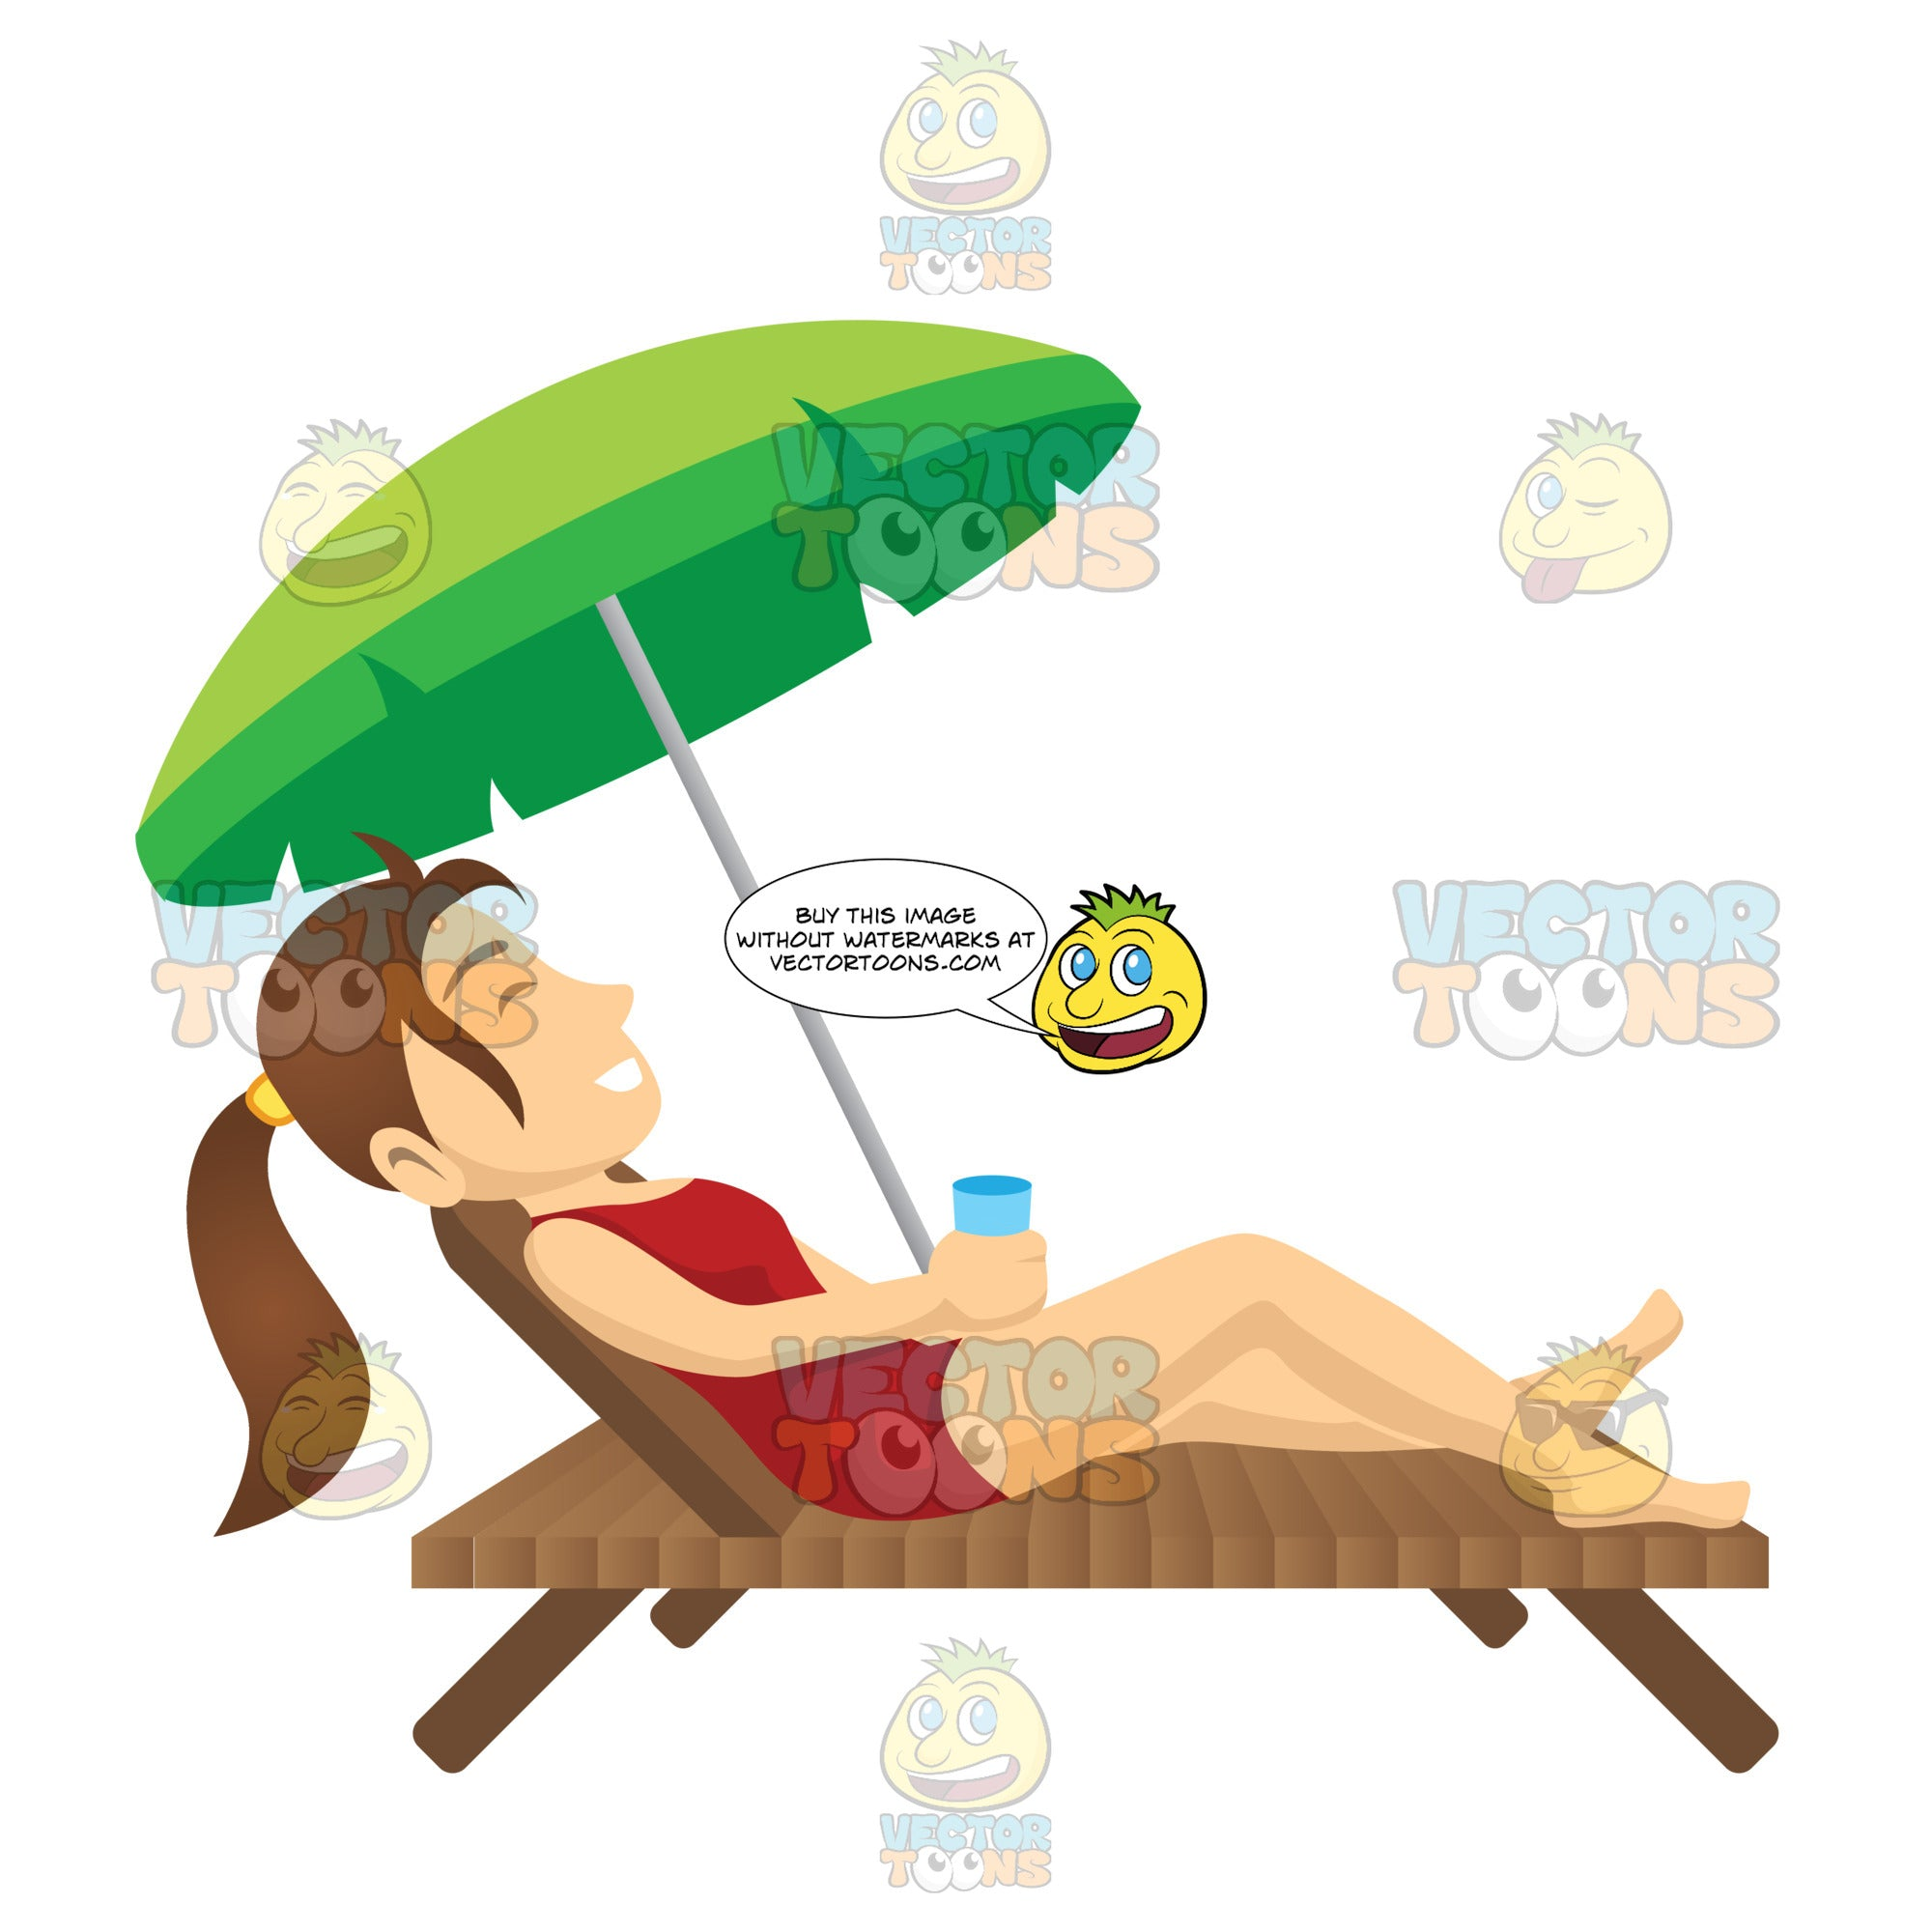 Female Laying On A Beach Chair Under An Umbrella While Holding A Drink